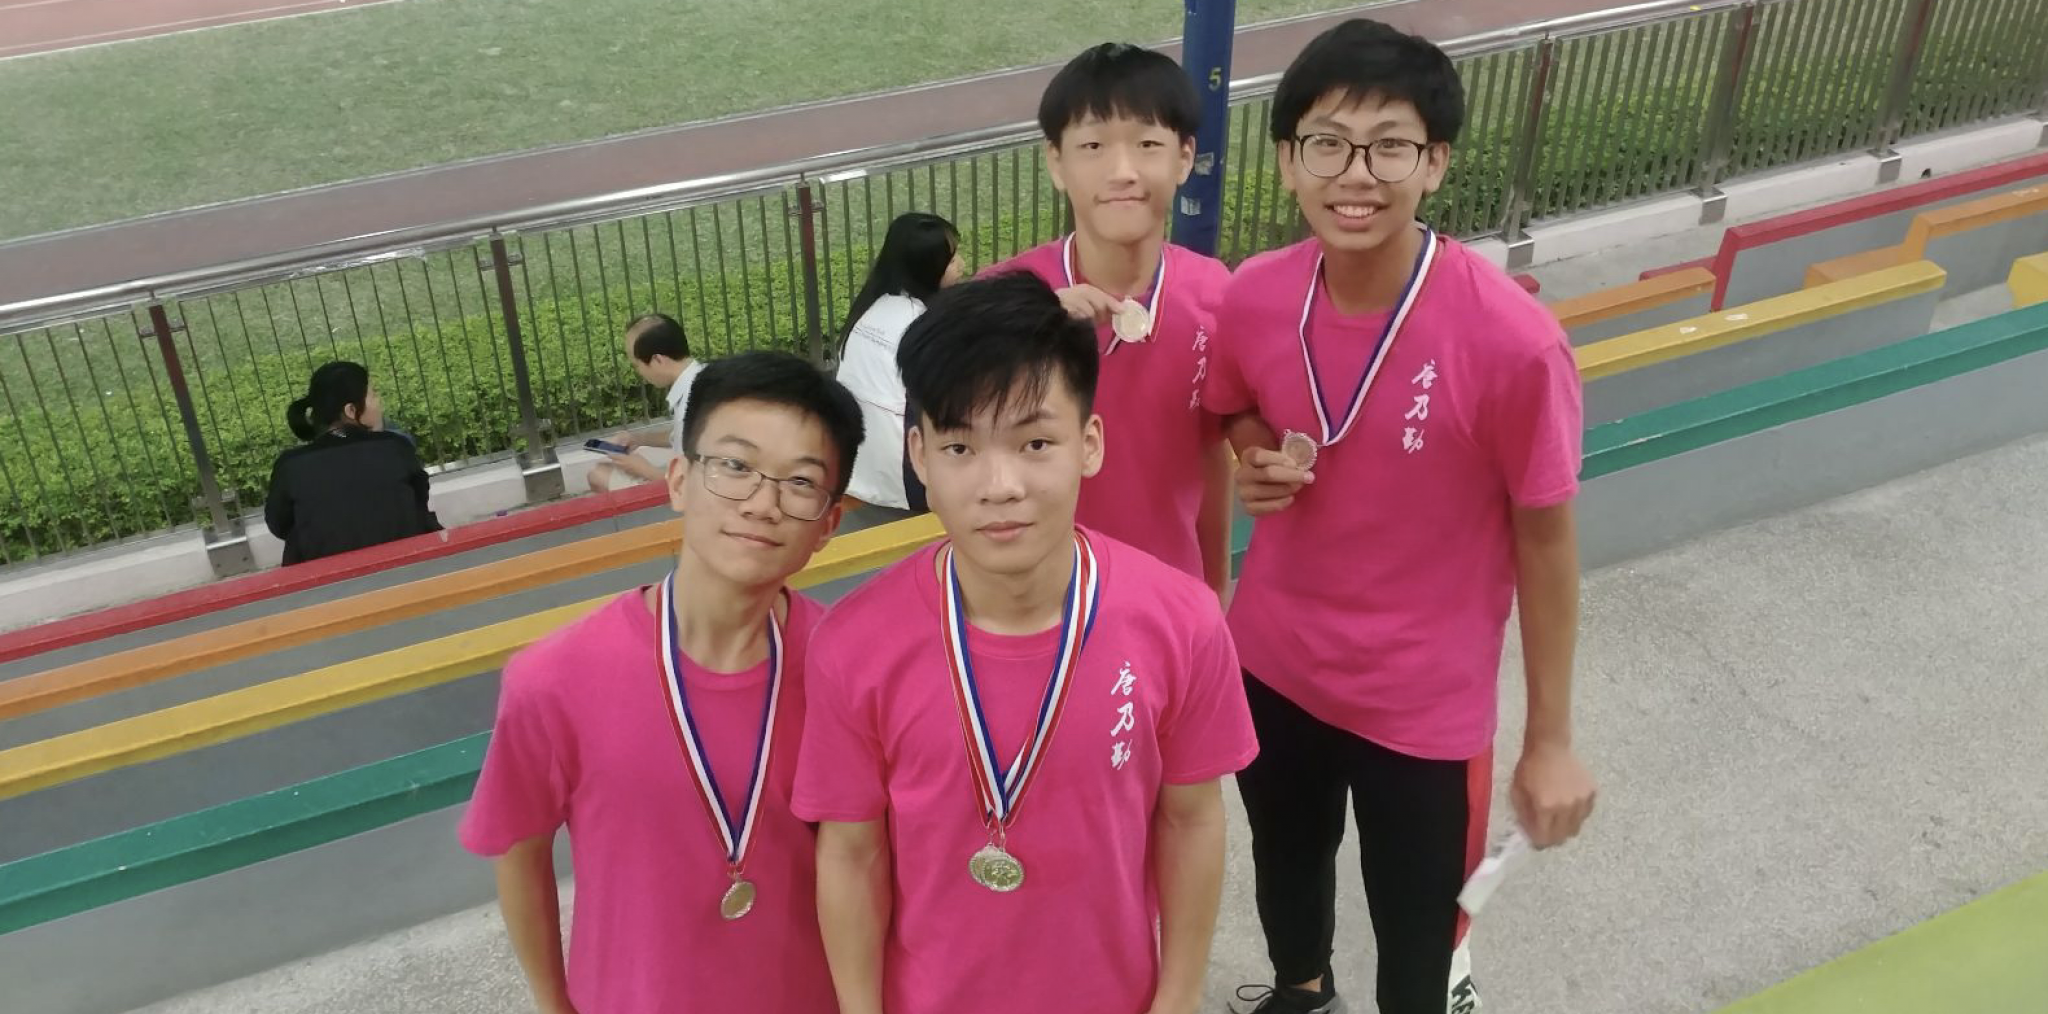 First Runners-up in 4x100m Relay